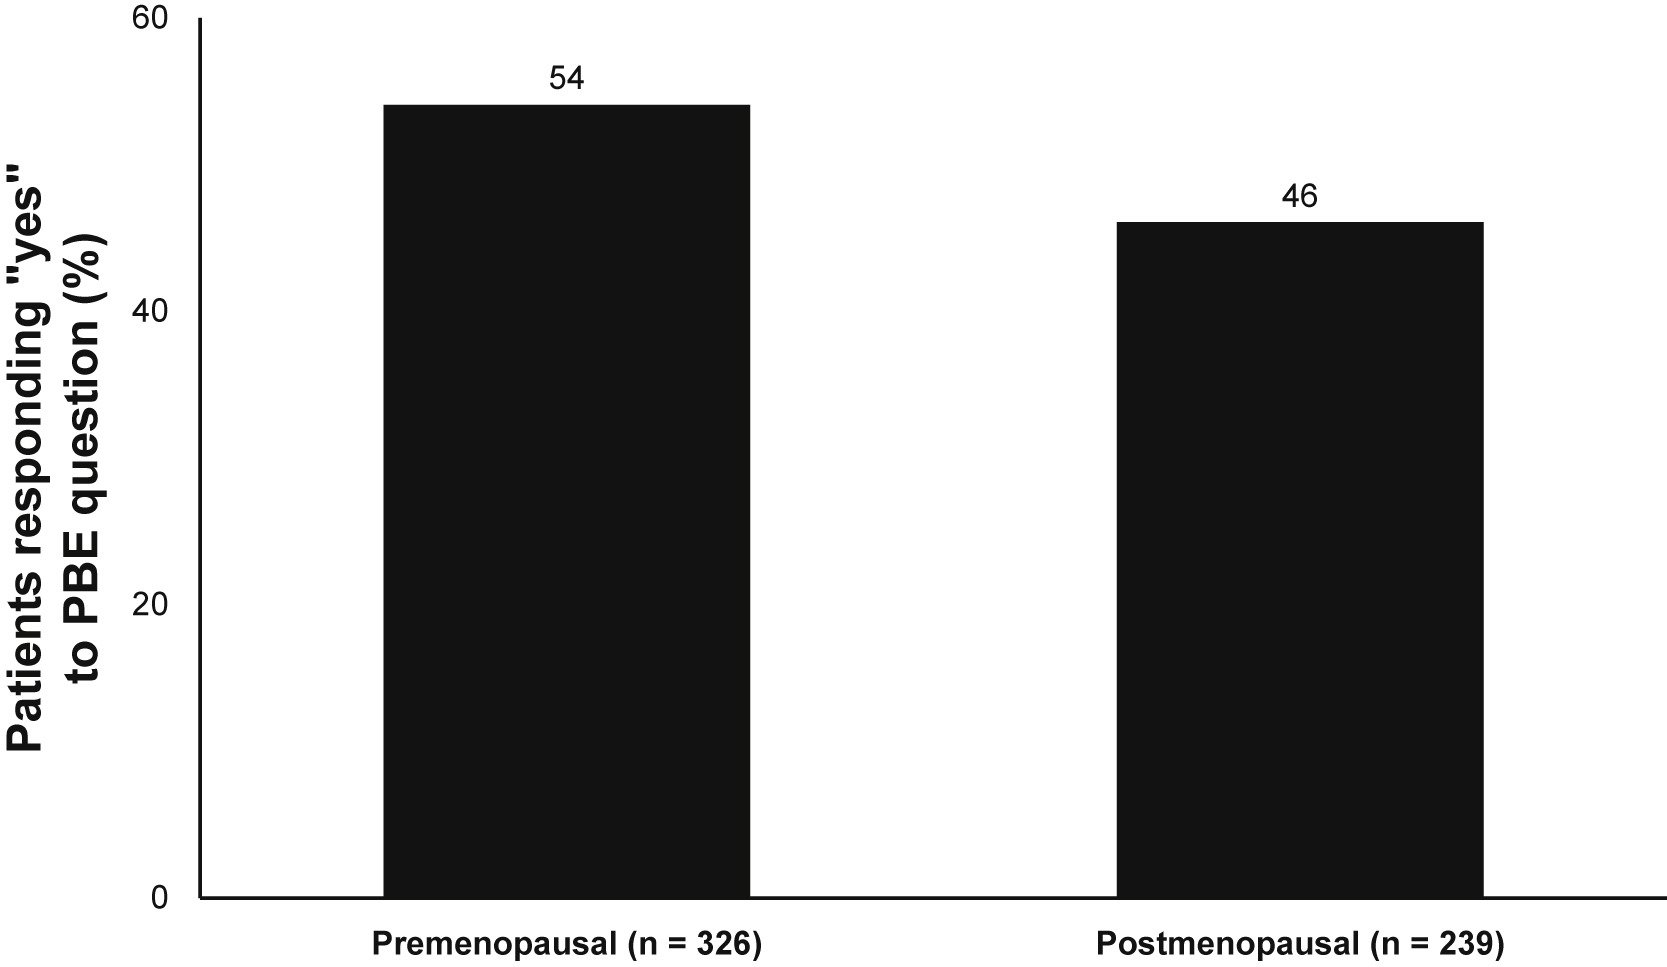 an analysis of the sexual disorders In 1959, chromosomal analysis of two human disorders, turner syndrome and klinefelter syndrome, demonstrated for the first time that genetic factors on the y chromosomes of mammals are important determinants in male sex.